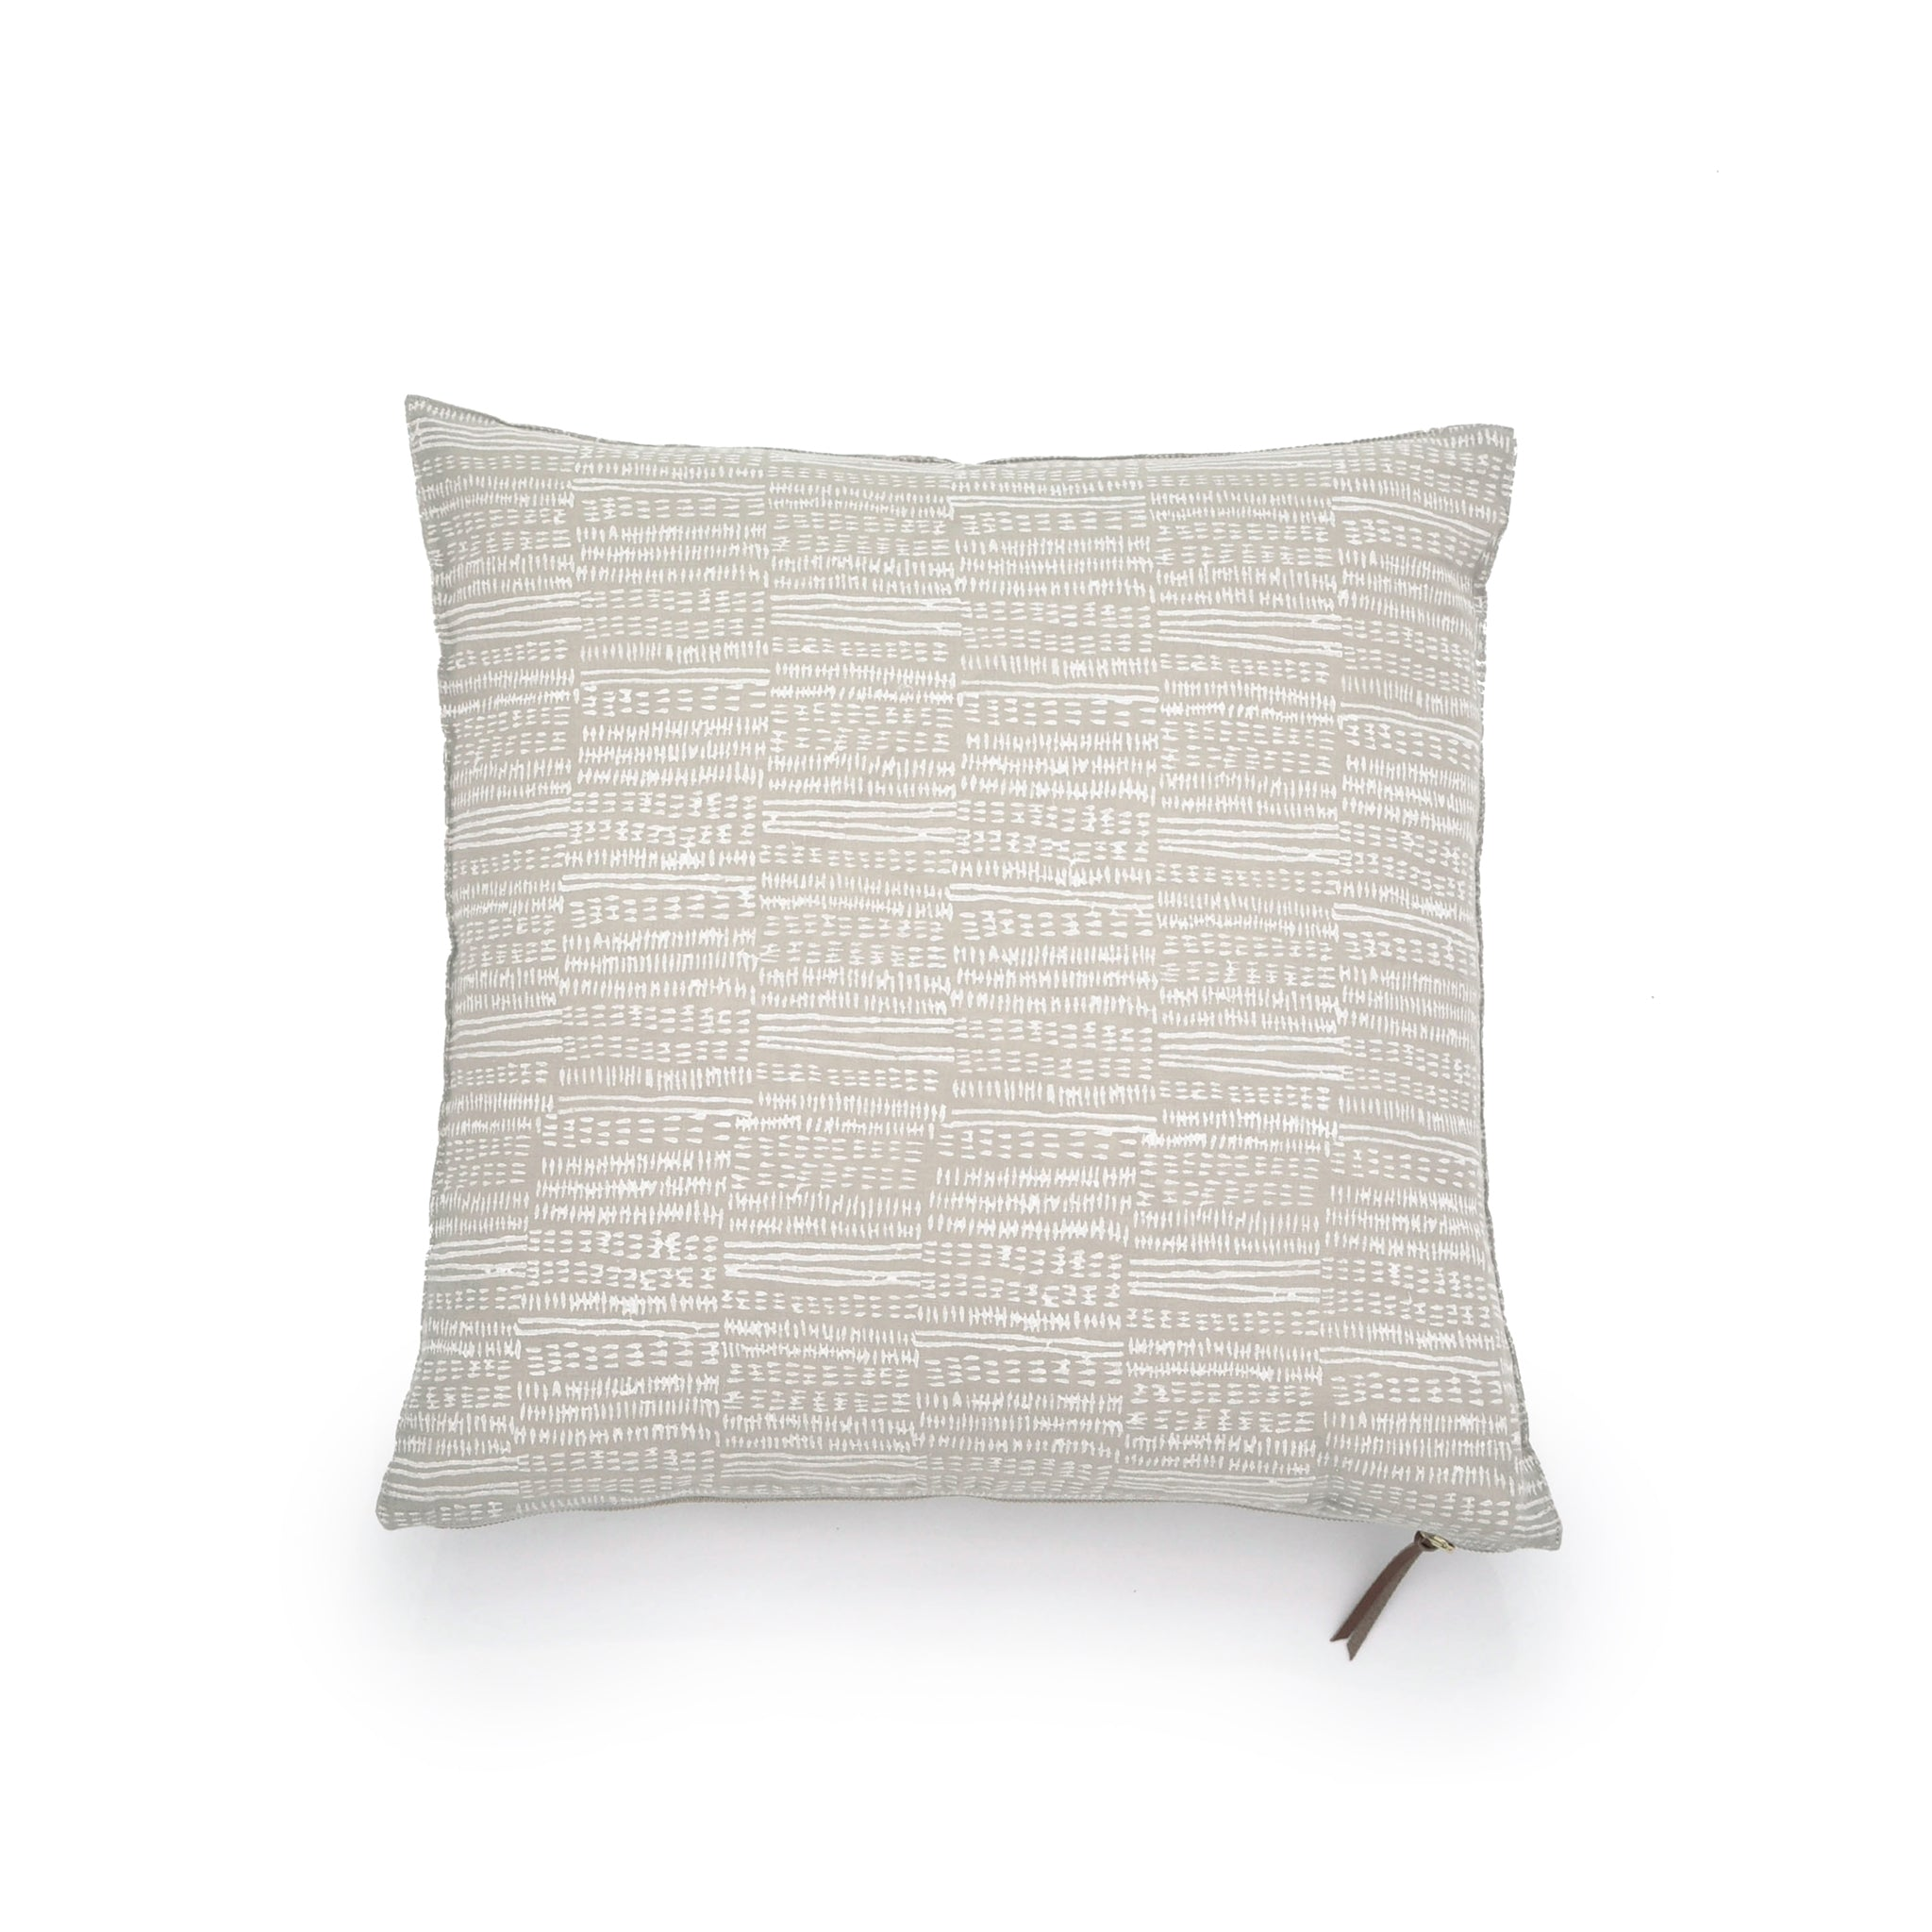 Common Texture square pure linen cushion cover featuring a hand block printed dash pattern in cream on pastel beige with contrasting gold zip and leather pull tag.